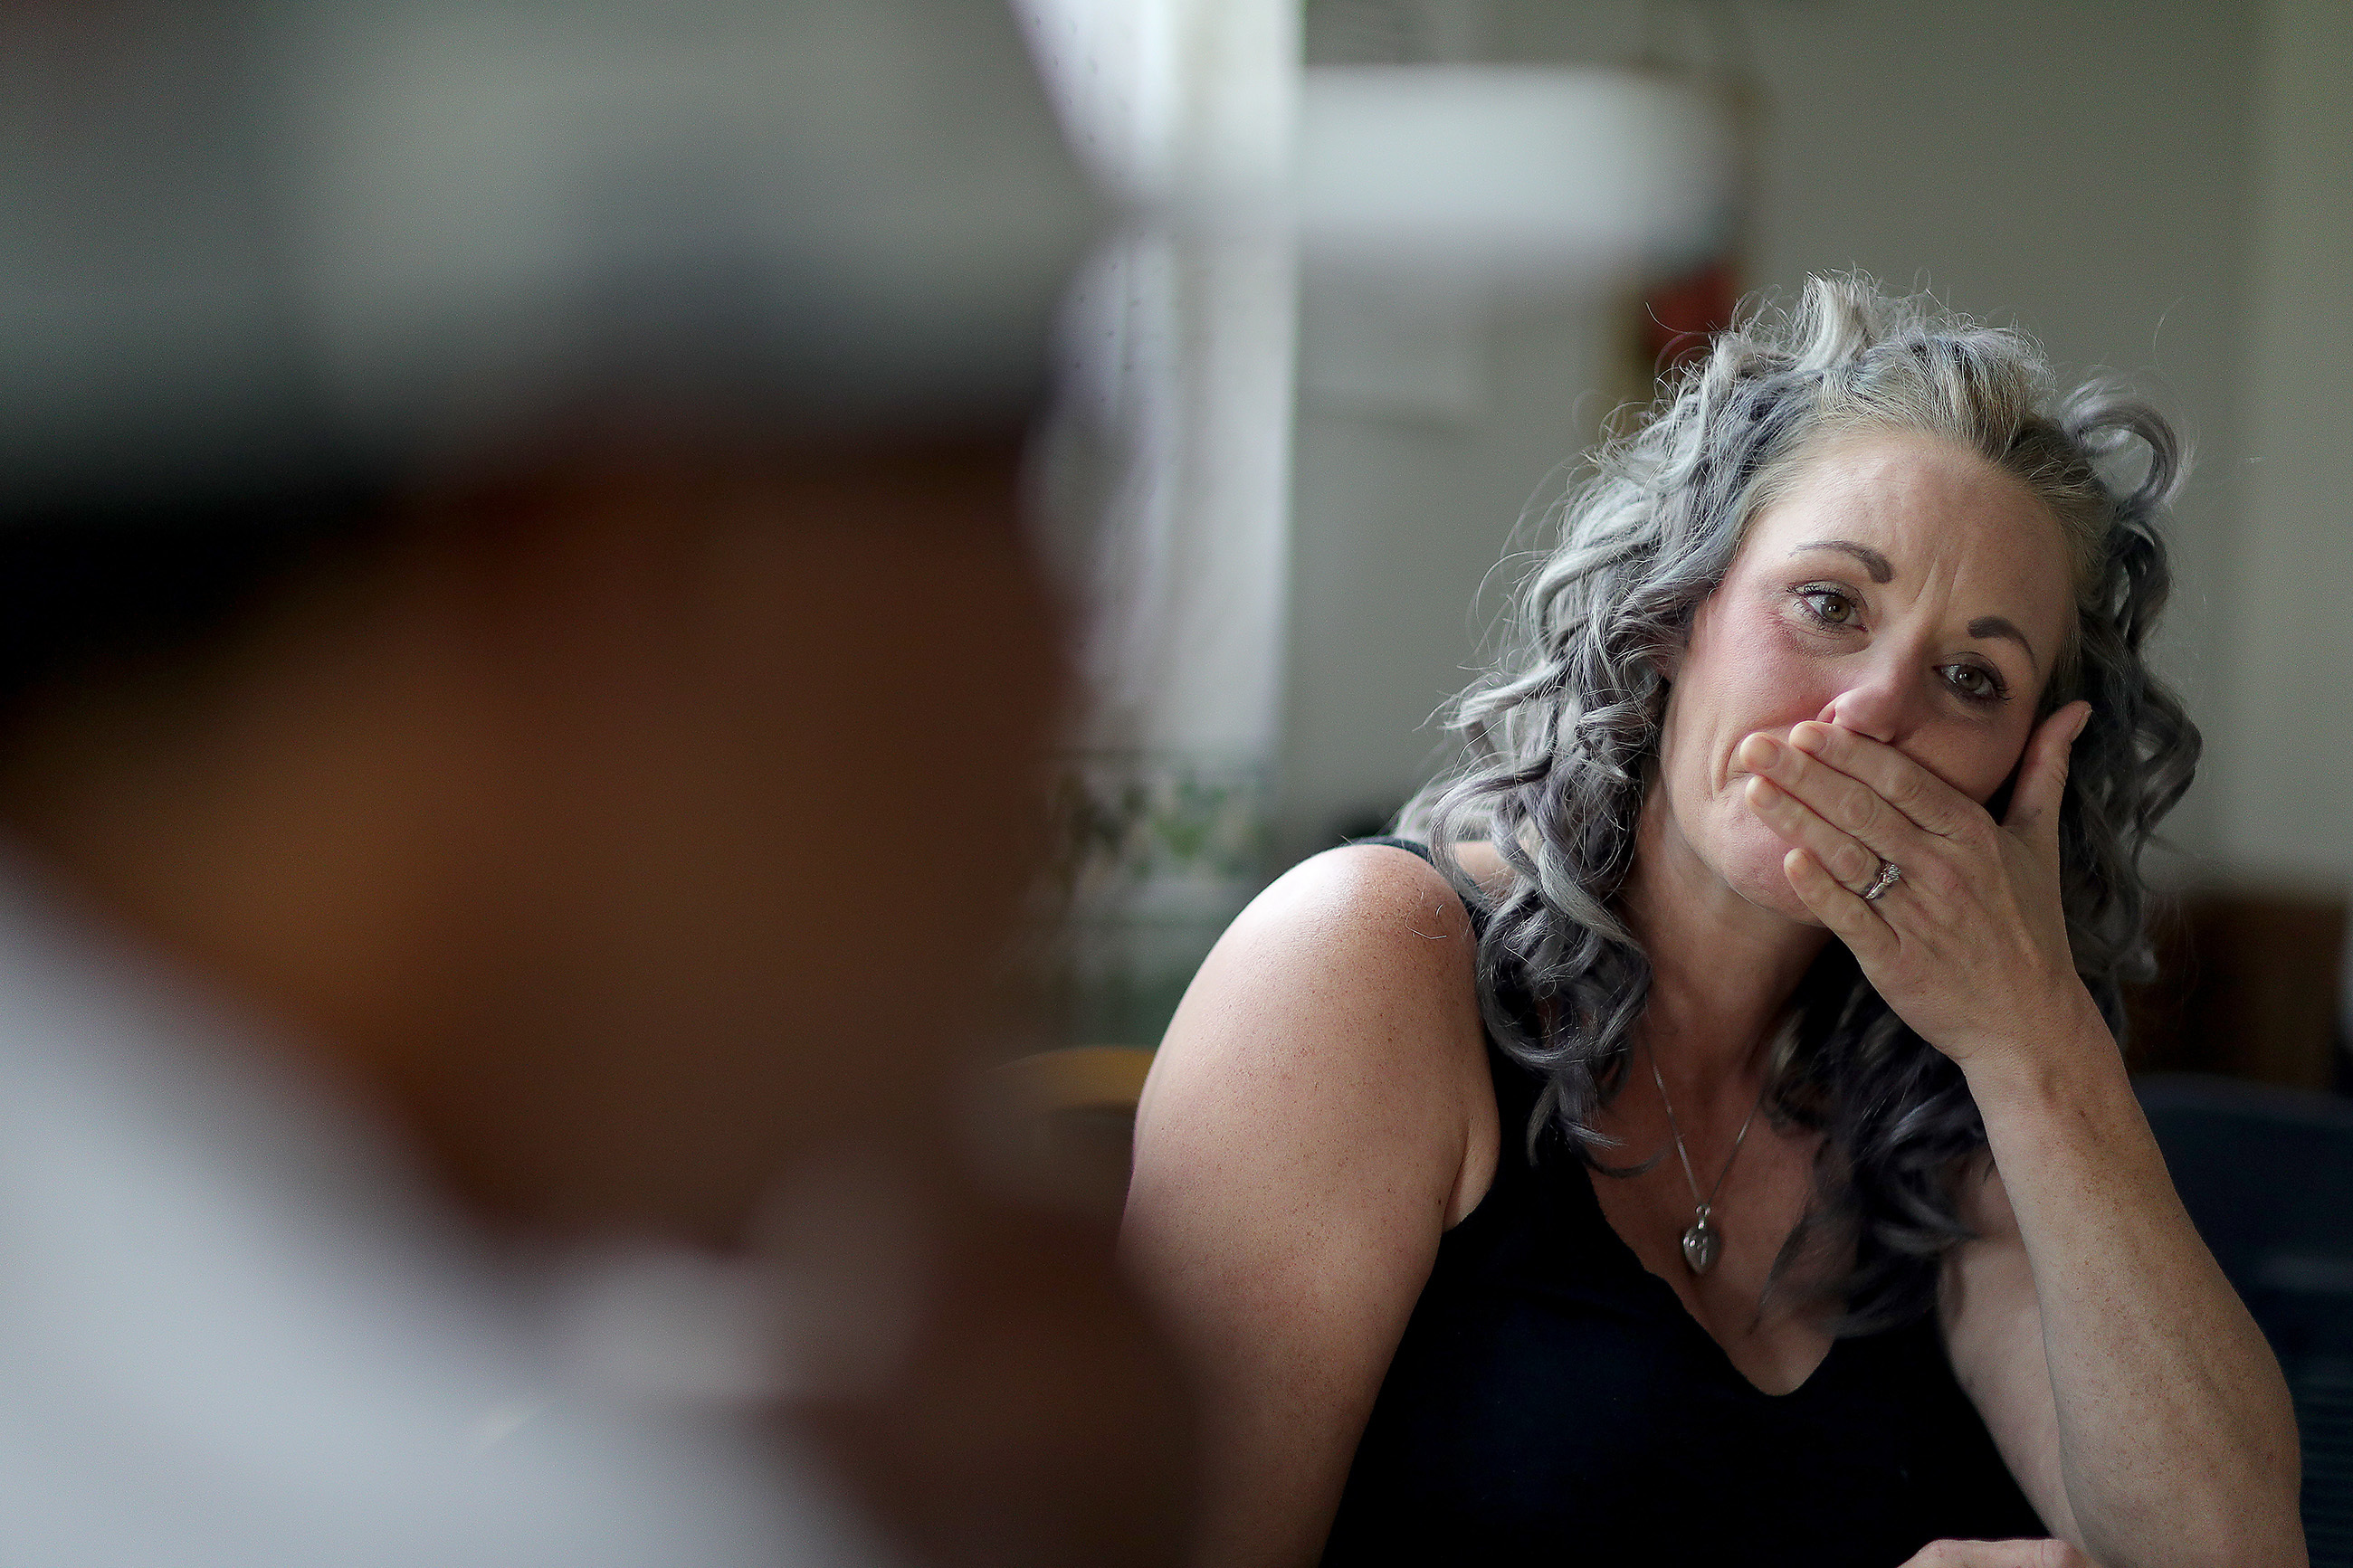 Lisa Geist cries as she talks about her 17 year-old daughter, Brieze McCabe, in Kulpmont, PA on July 5, 2018. Her daughter died of an apparent drug overdose. The parents struggled to help her when they found out last fall that she was using heroin.